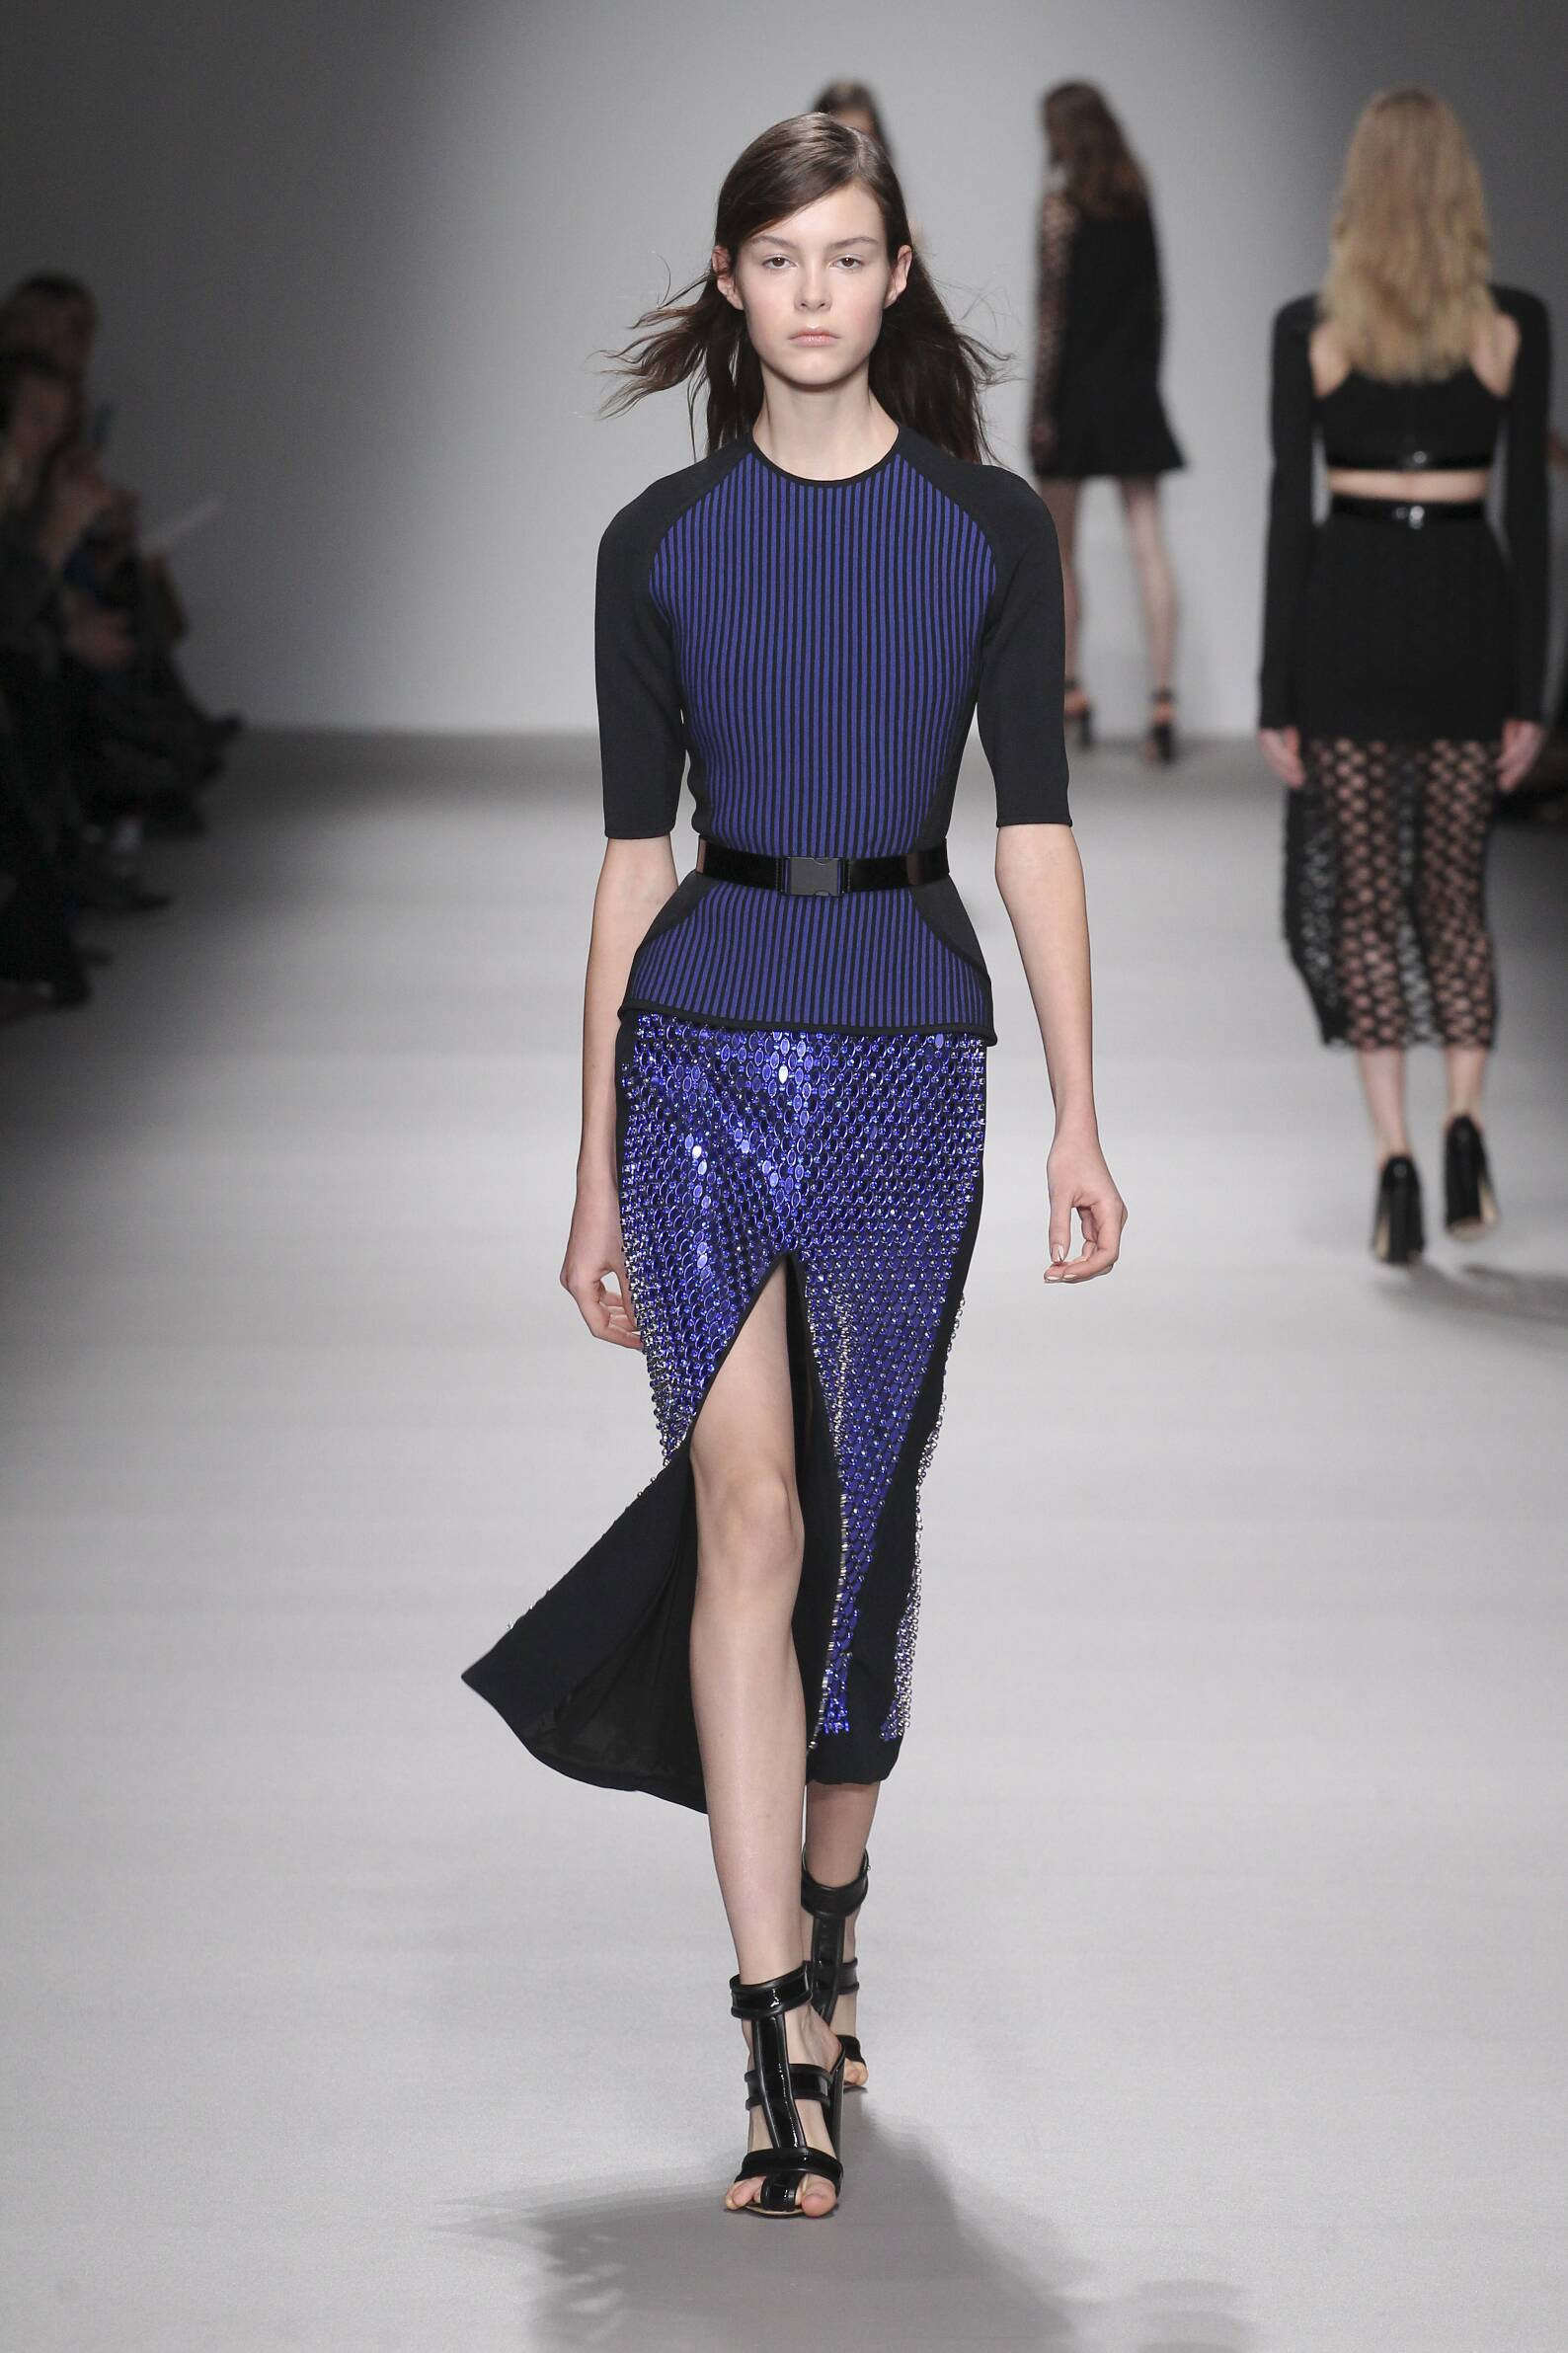 Catwalk David Koma Collection Fashion Show Winter 2015